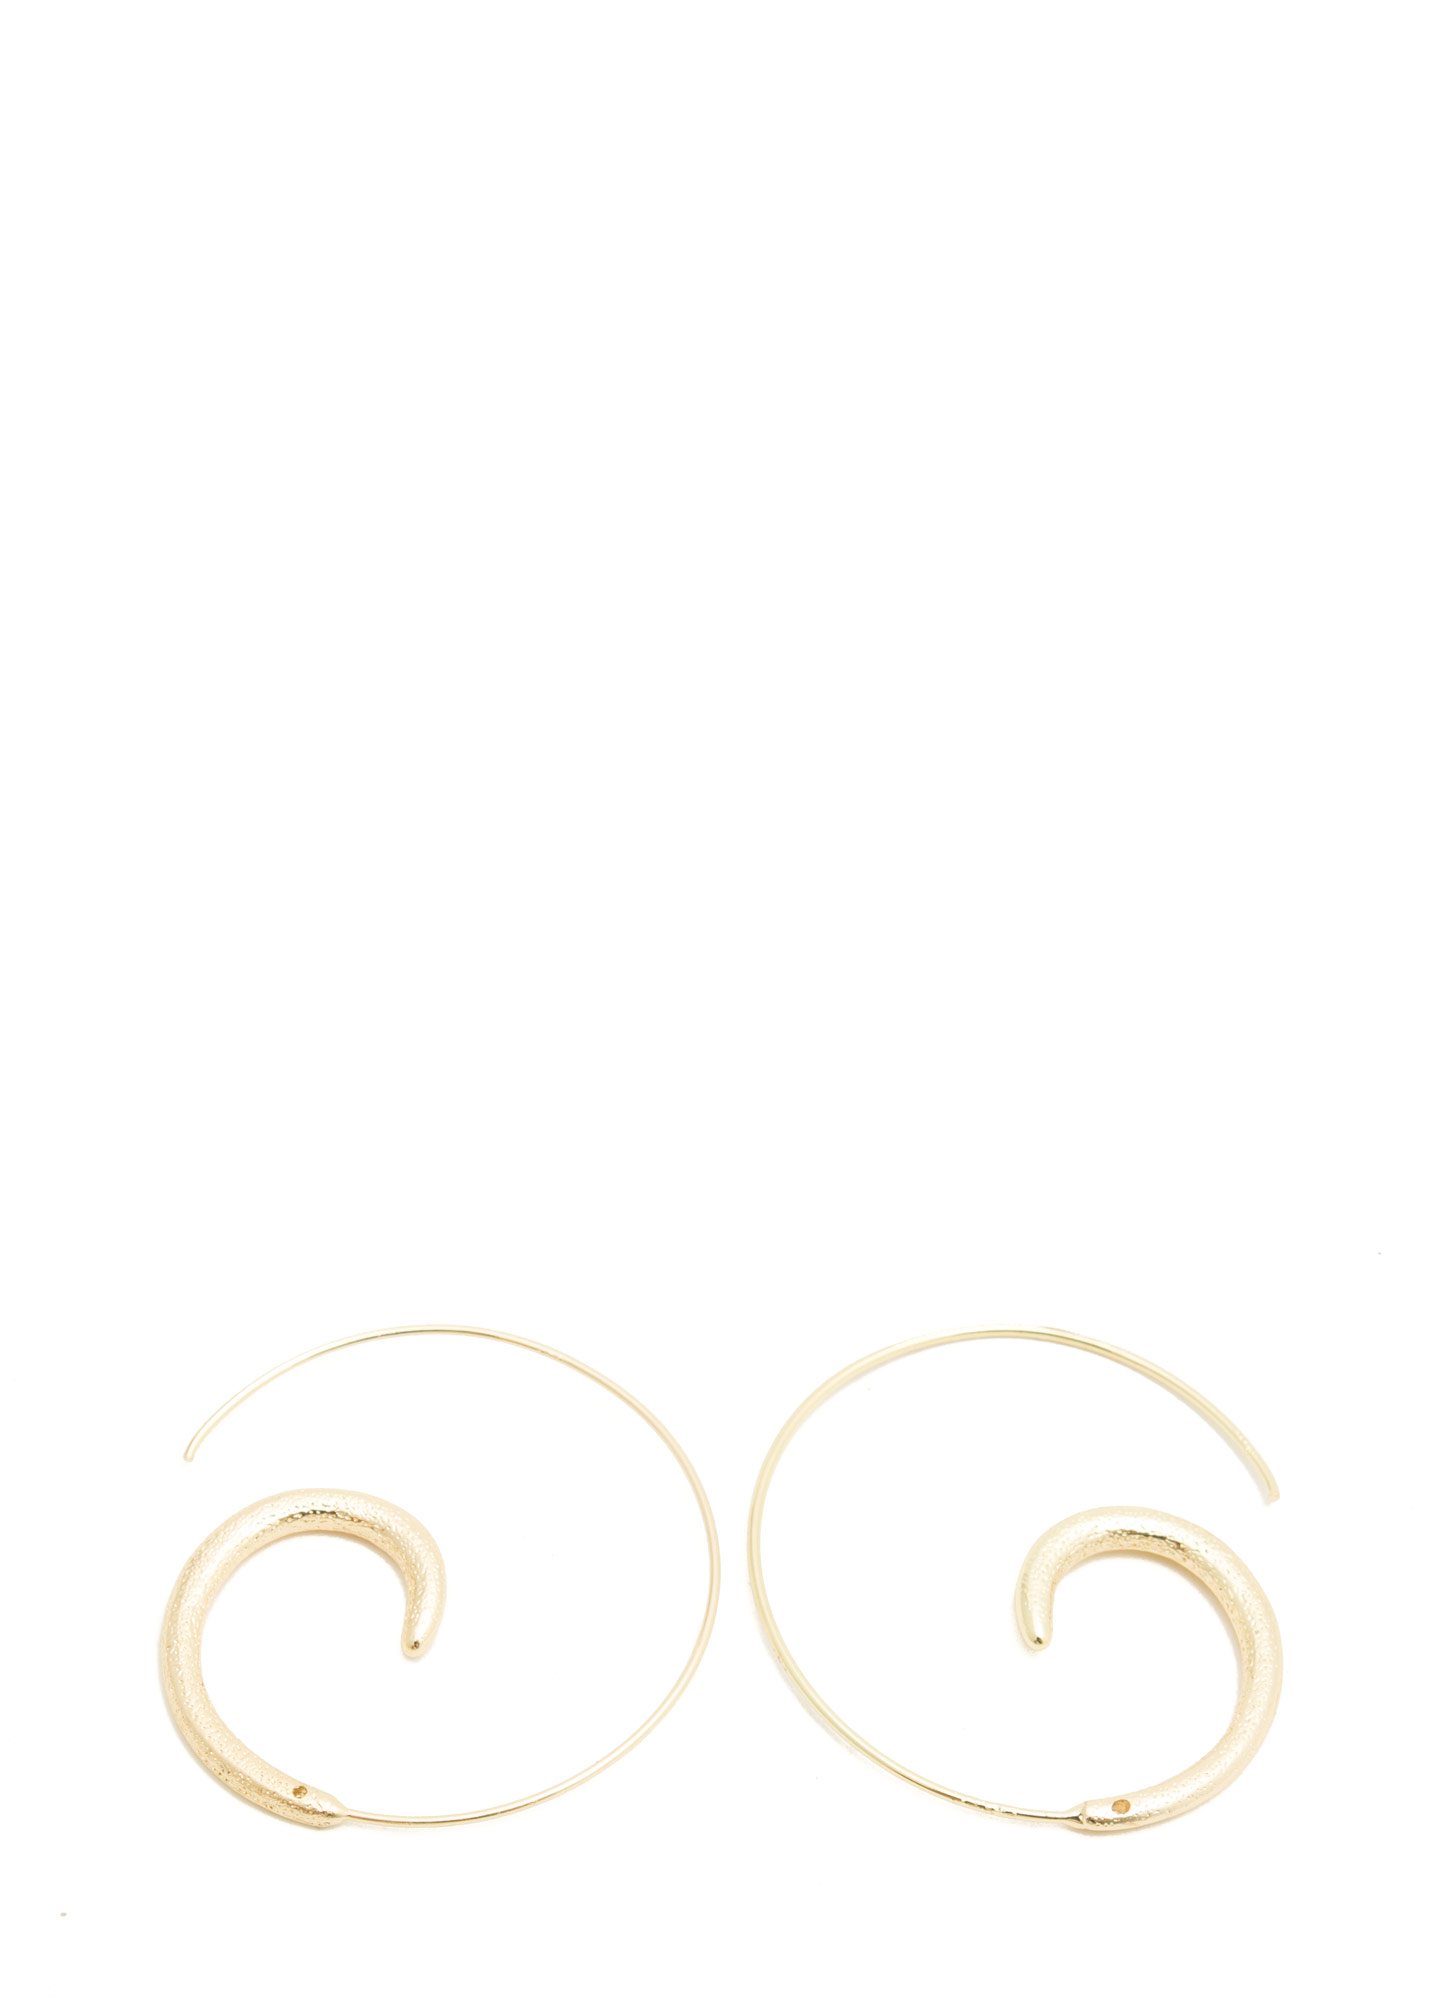 Coiled Snail Hoop Earrings GOLD